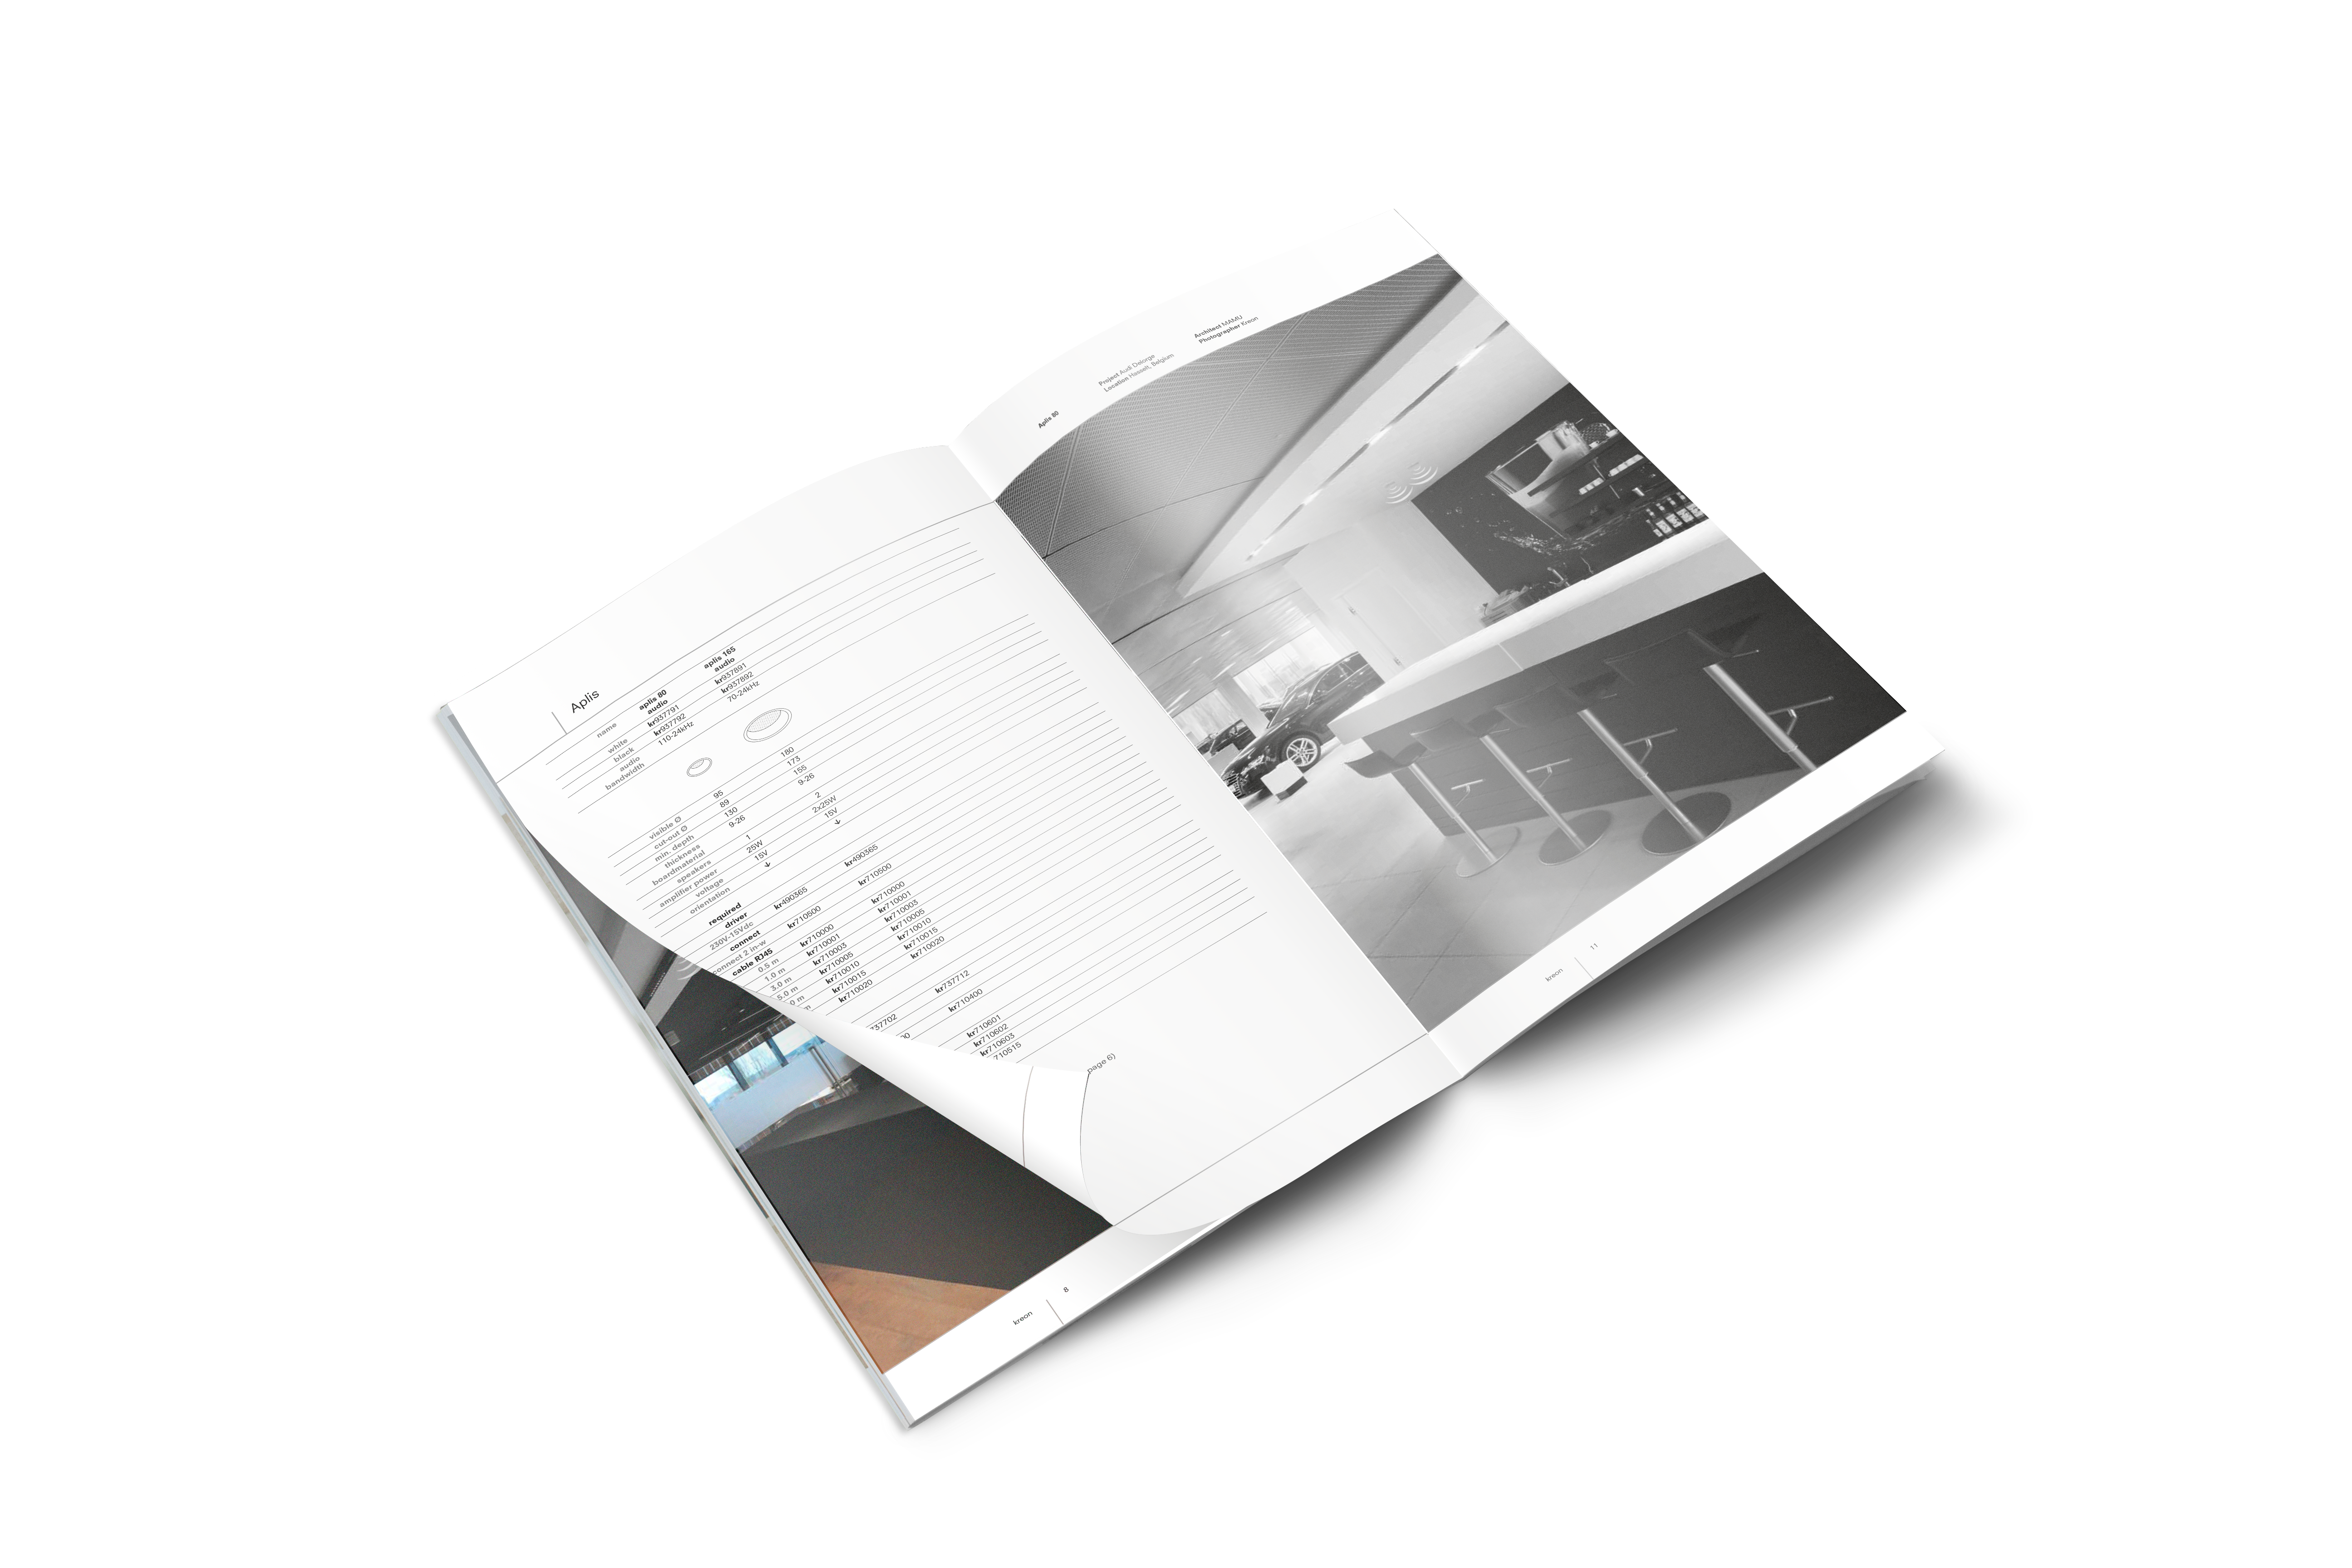 Kreon-Acoustic-Systems-brochure-2014.png